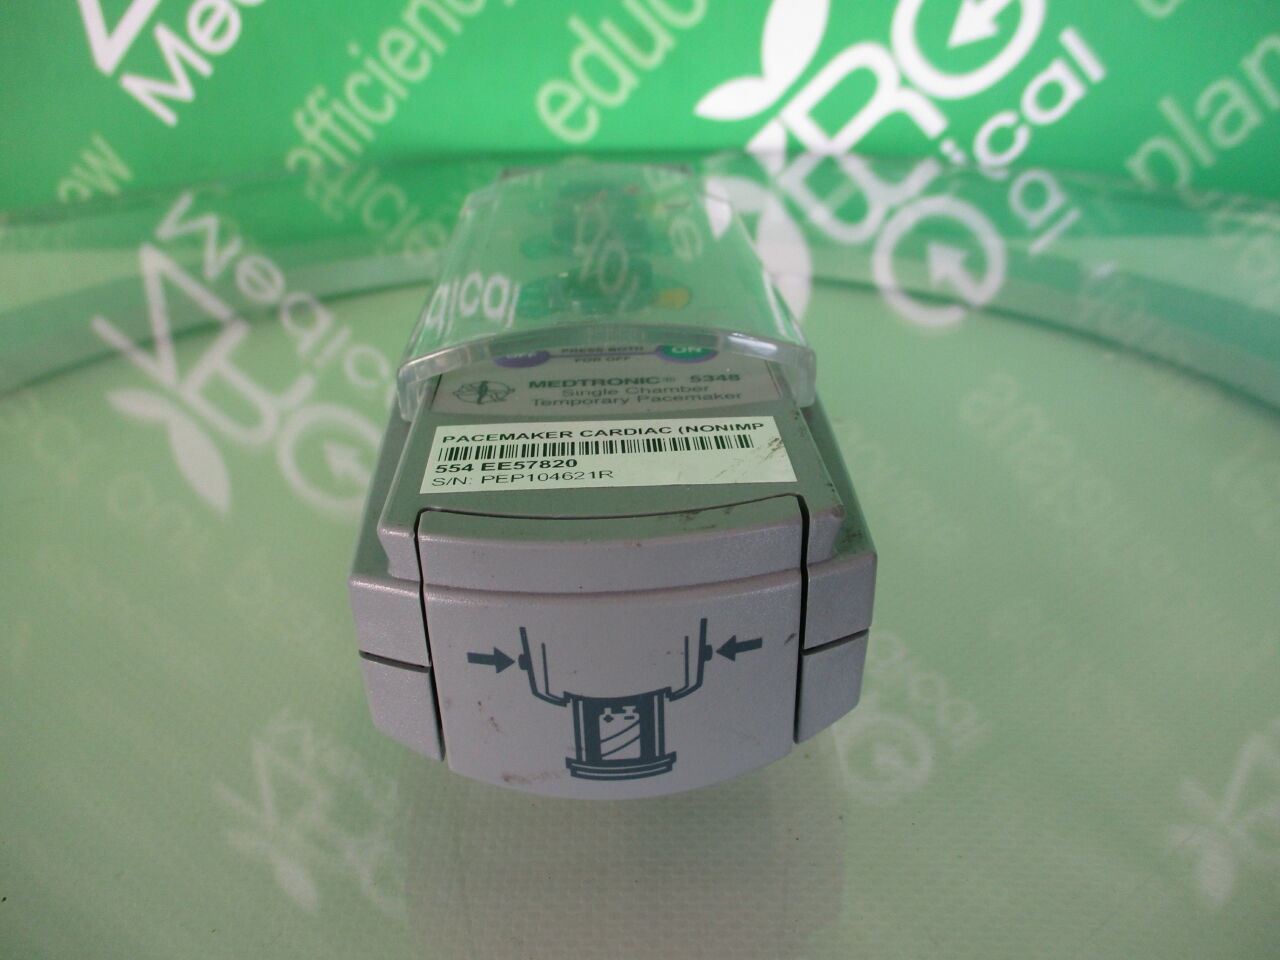 MEDTRONIC 5348 Single Chamber Temporary  Pacemaker